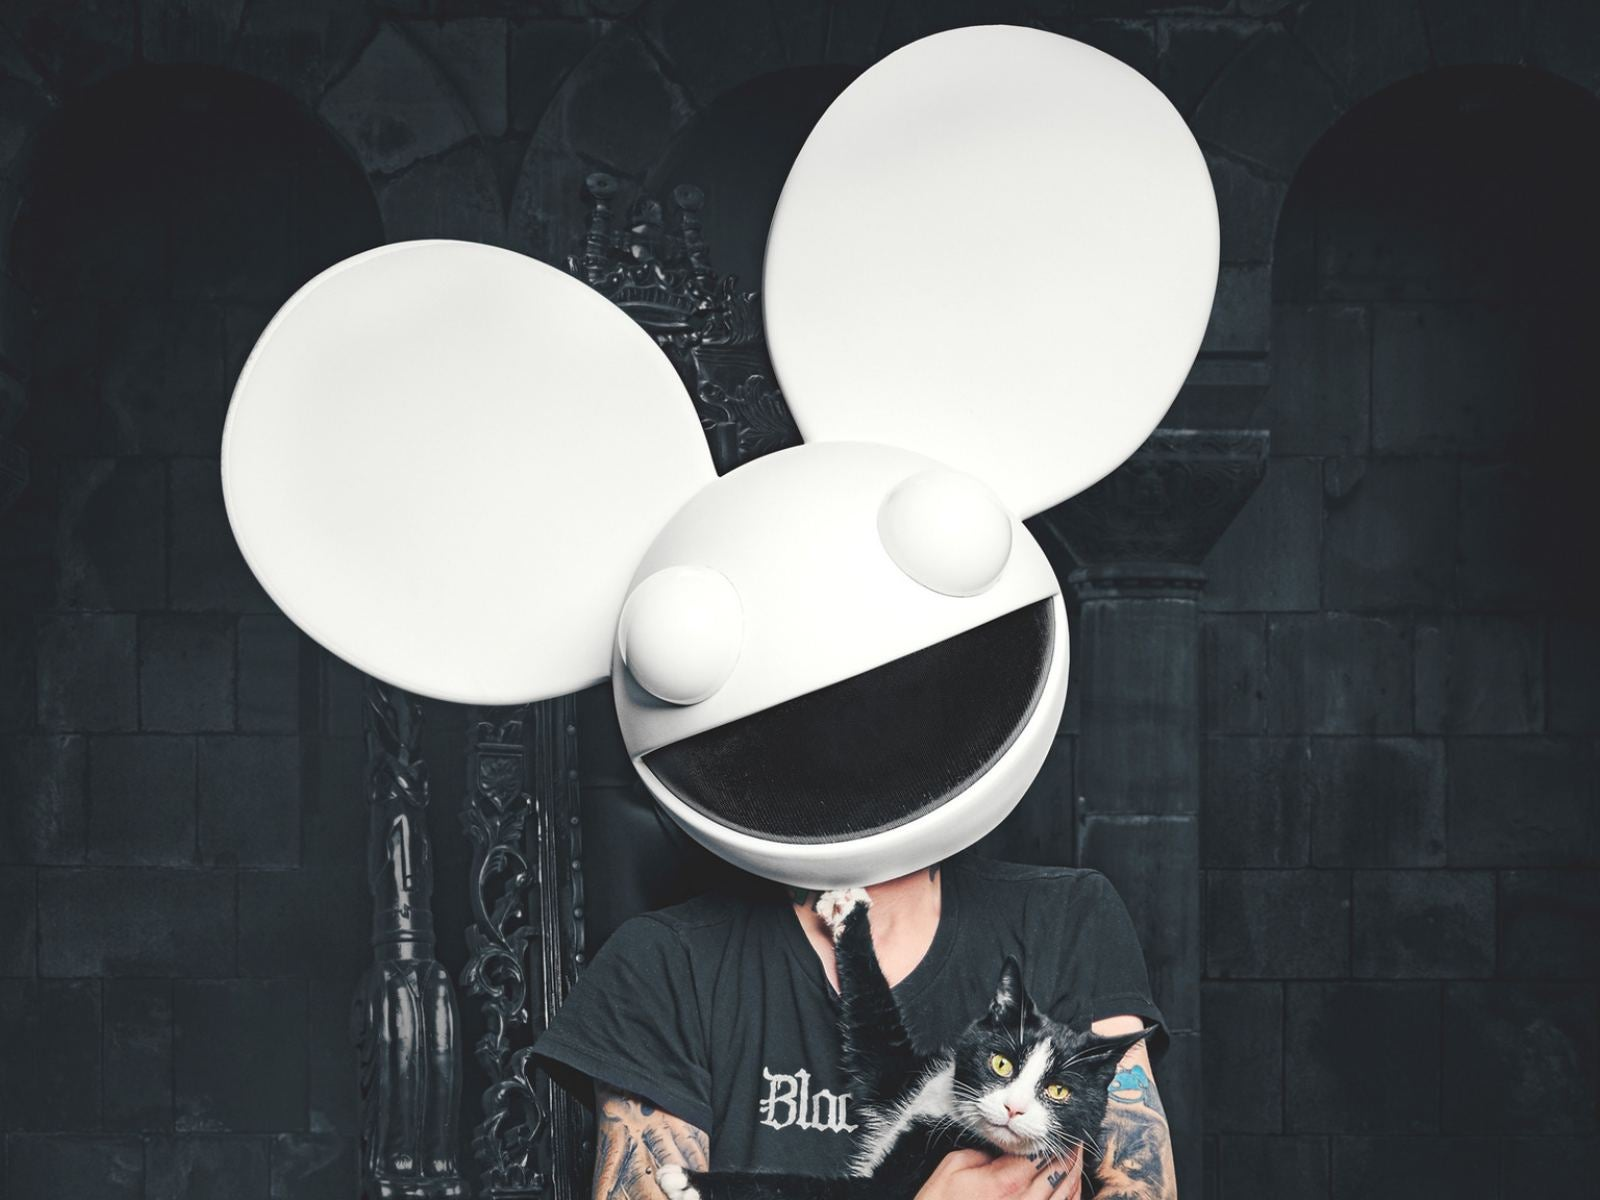 Main image for event titled deadmau5